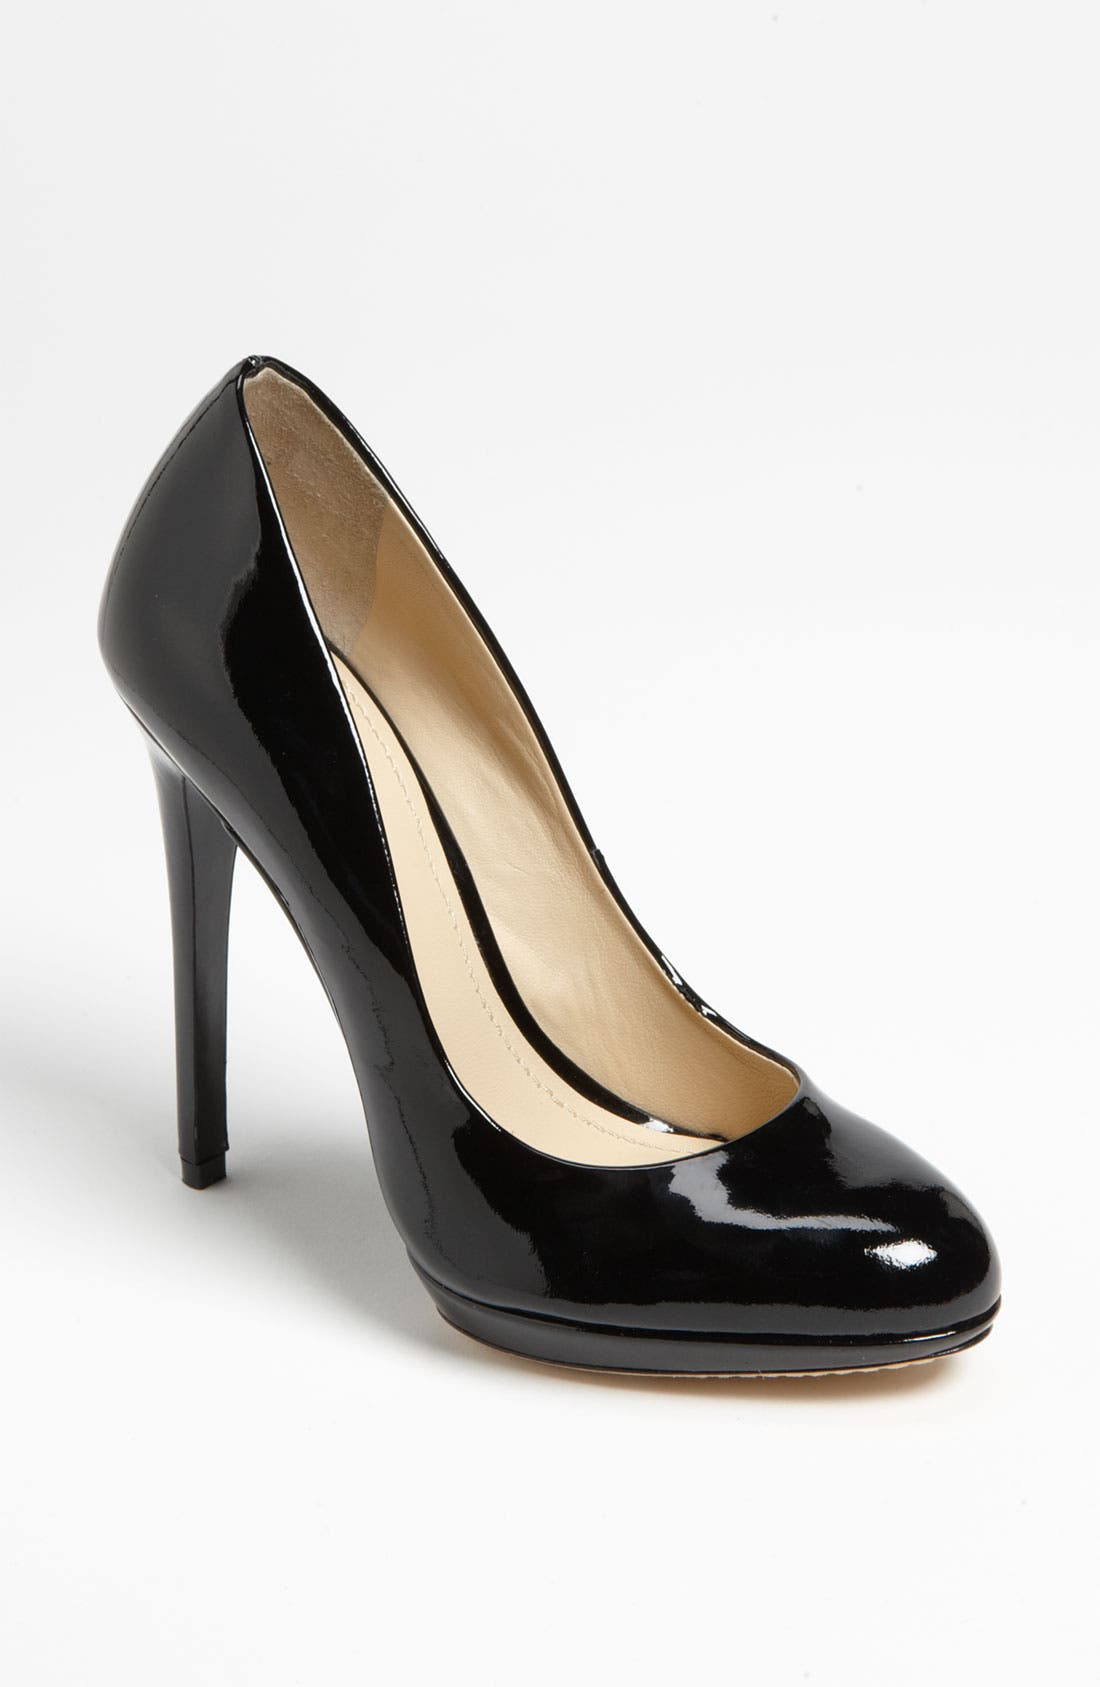 Main Image - B Brian Atwood 'Frederique' Pump